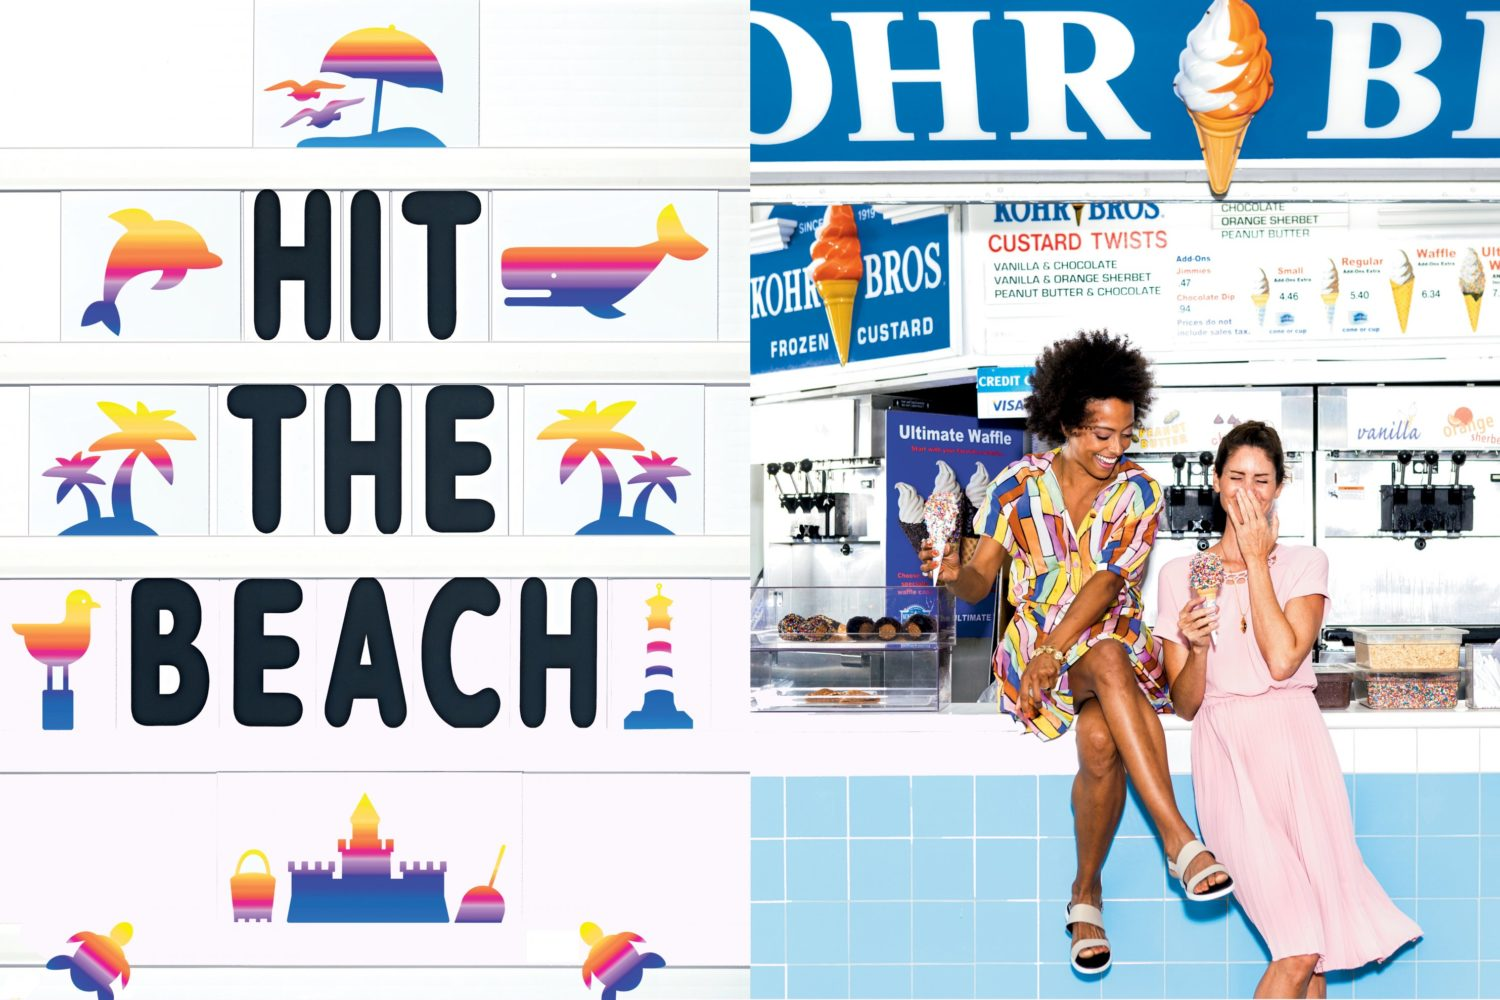 Washingtonian's Great Big 2018 Beach Guide